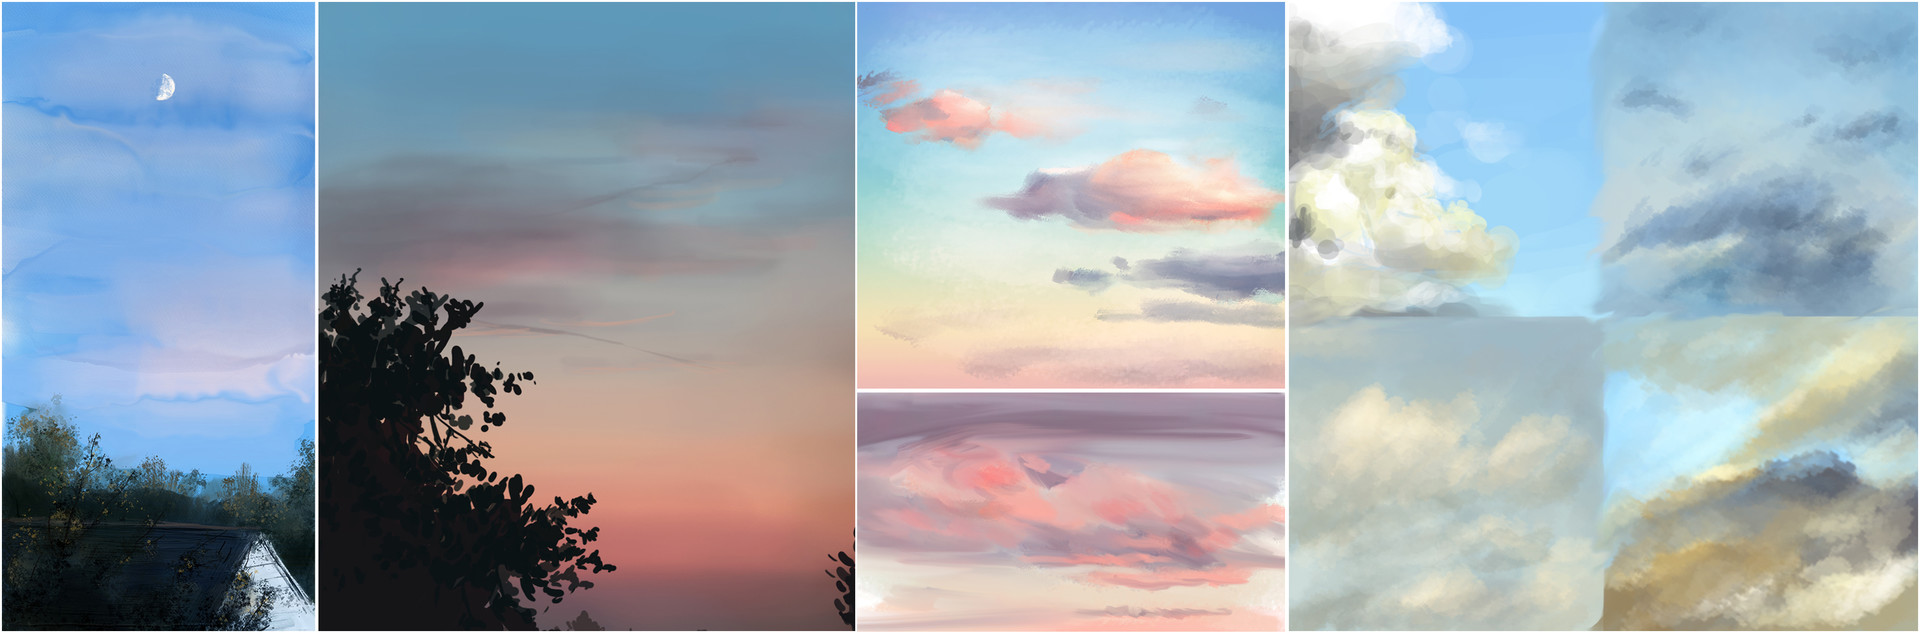 Studies from real life, looking at the sky through my window.